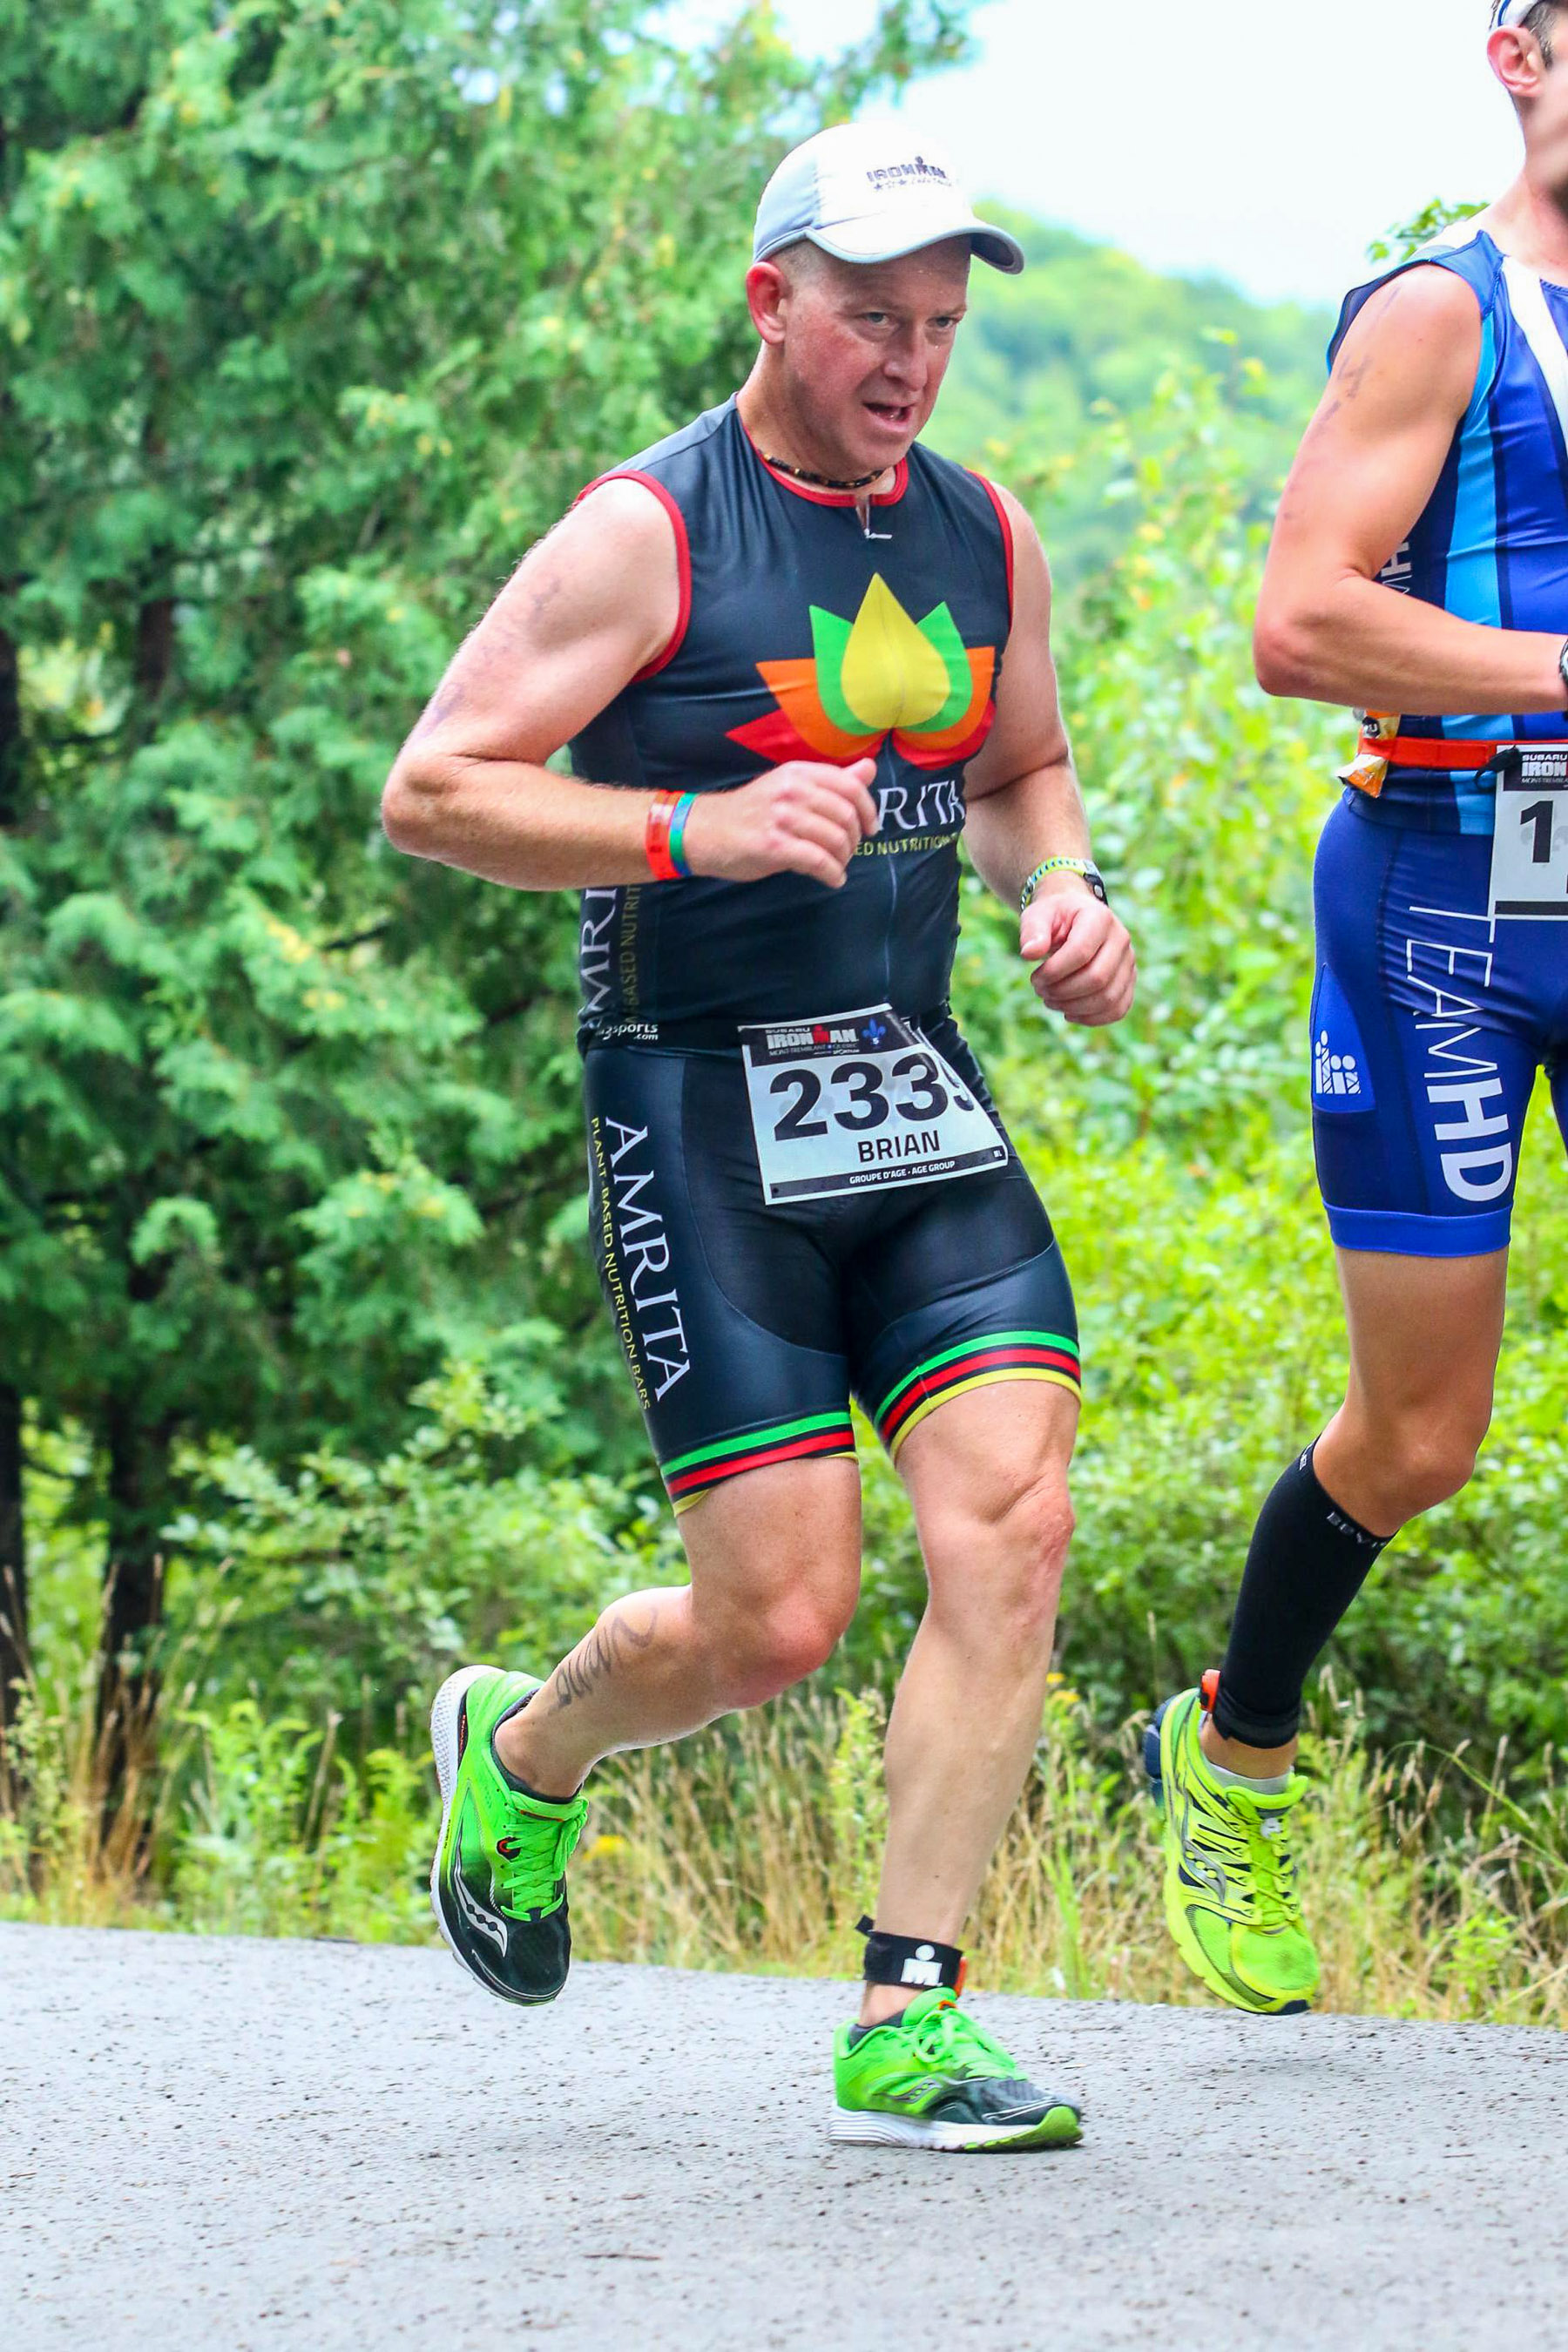 Ironman Mont-Tremblant 2016 - On the run. Must be getting tired here...starting to hunch a bit.